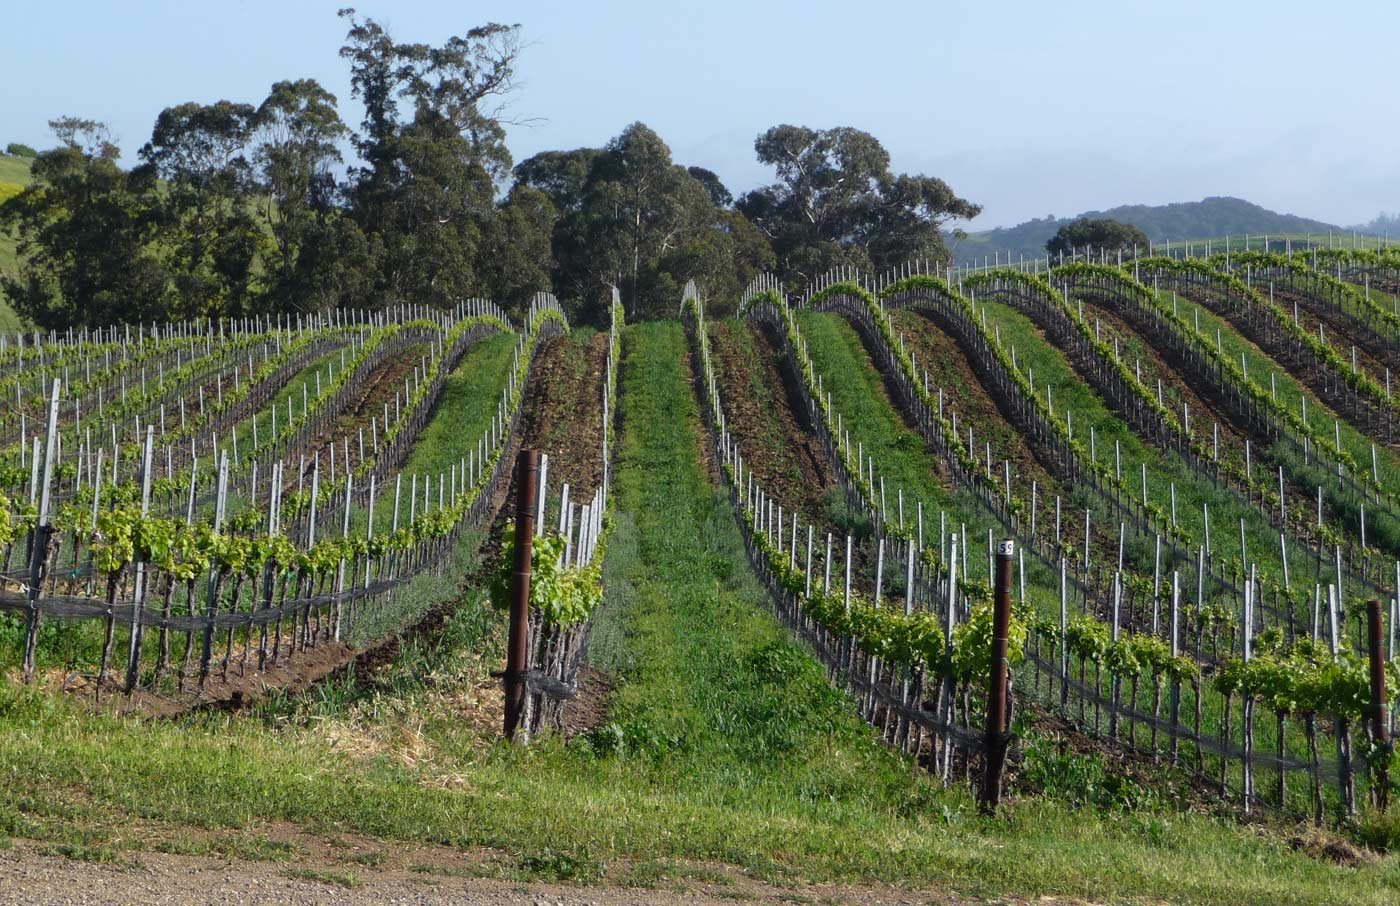 a rolling hill covered in grape vines at Wolff Vineyards